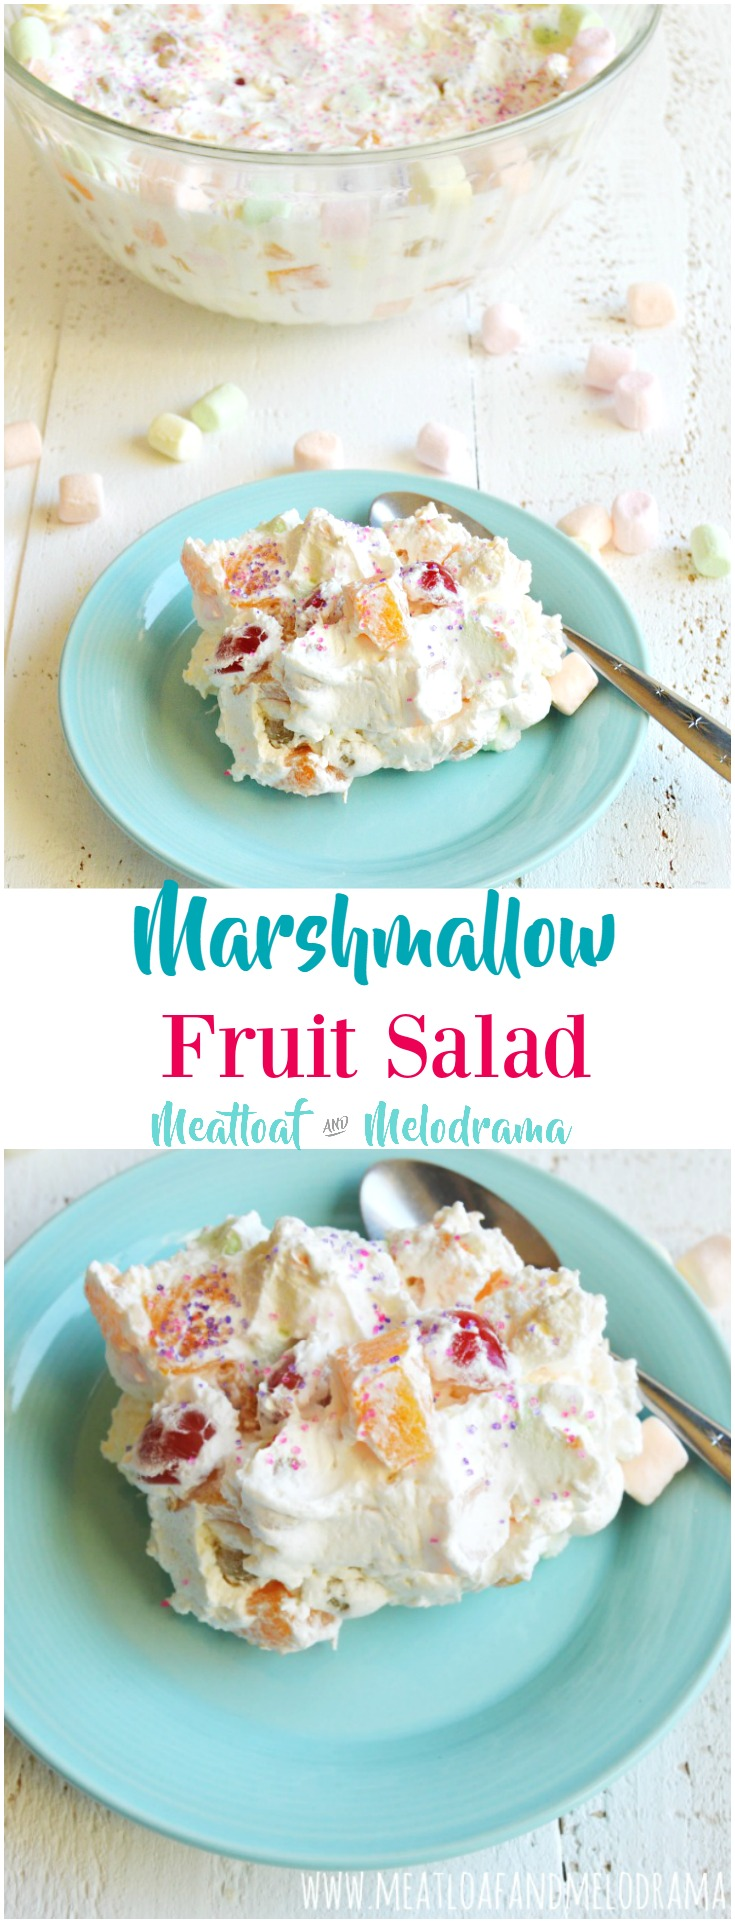 double image pin of fruit salad with marshmallows